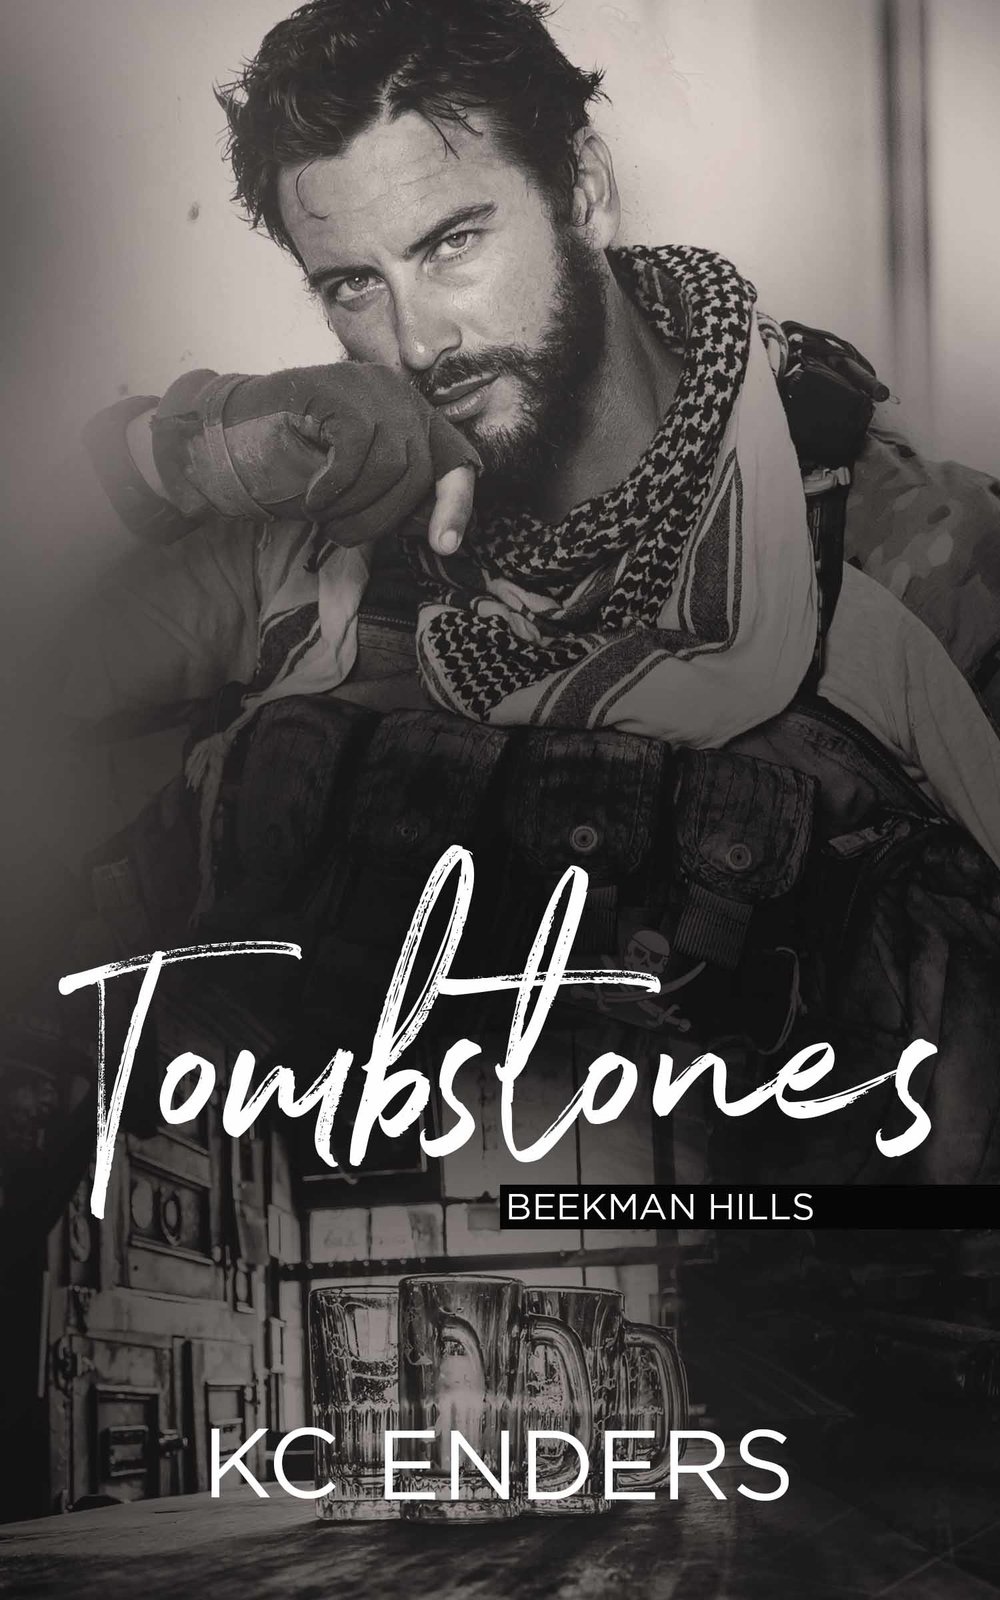 tomstones ebook cover.jpg